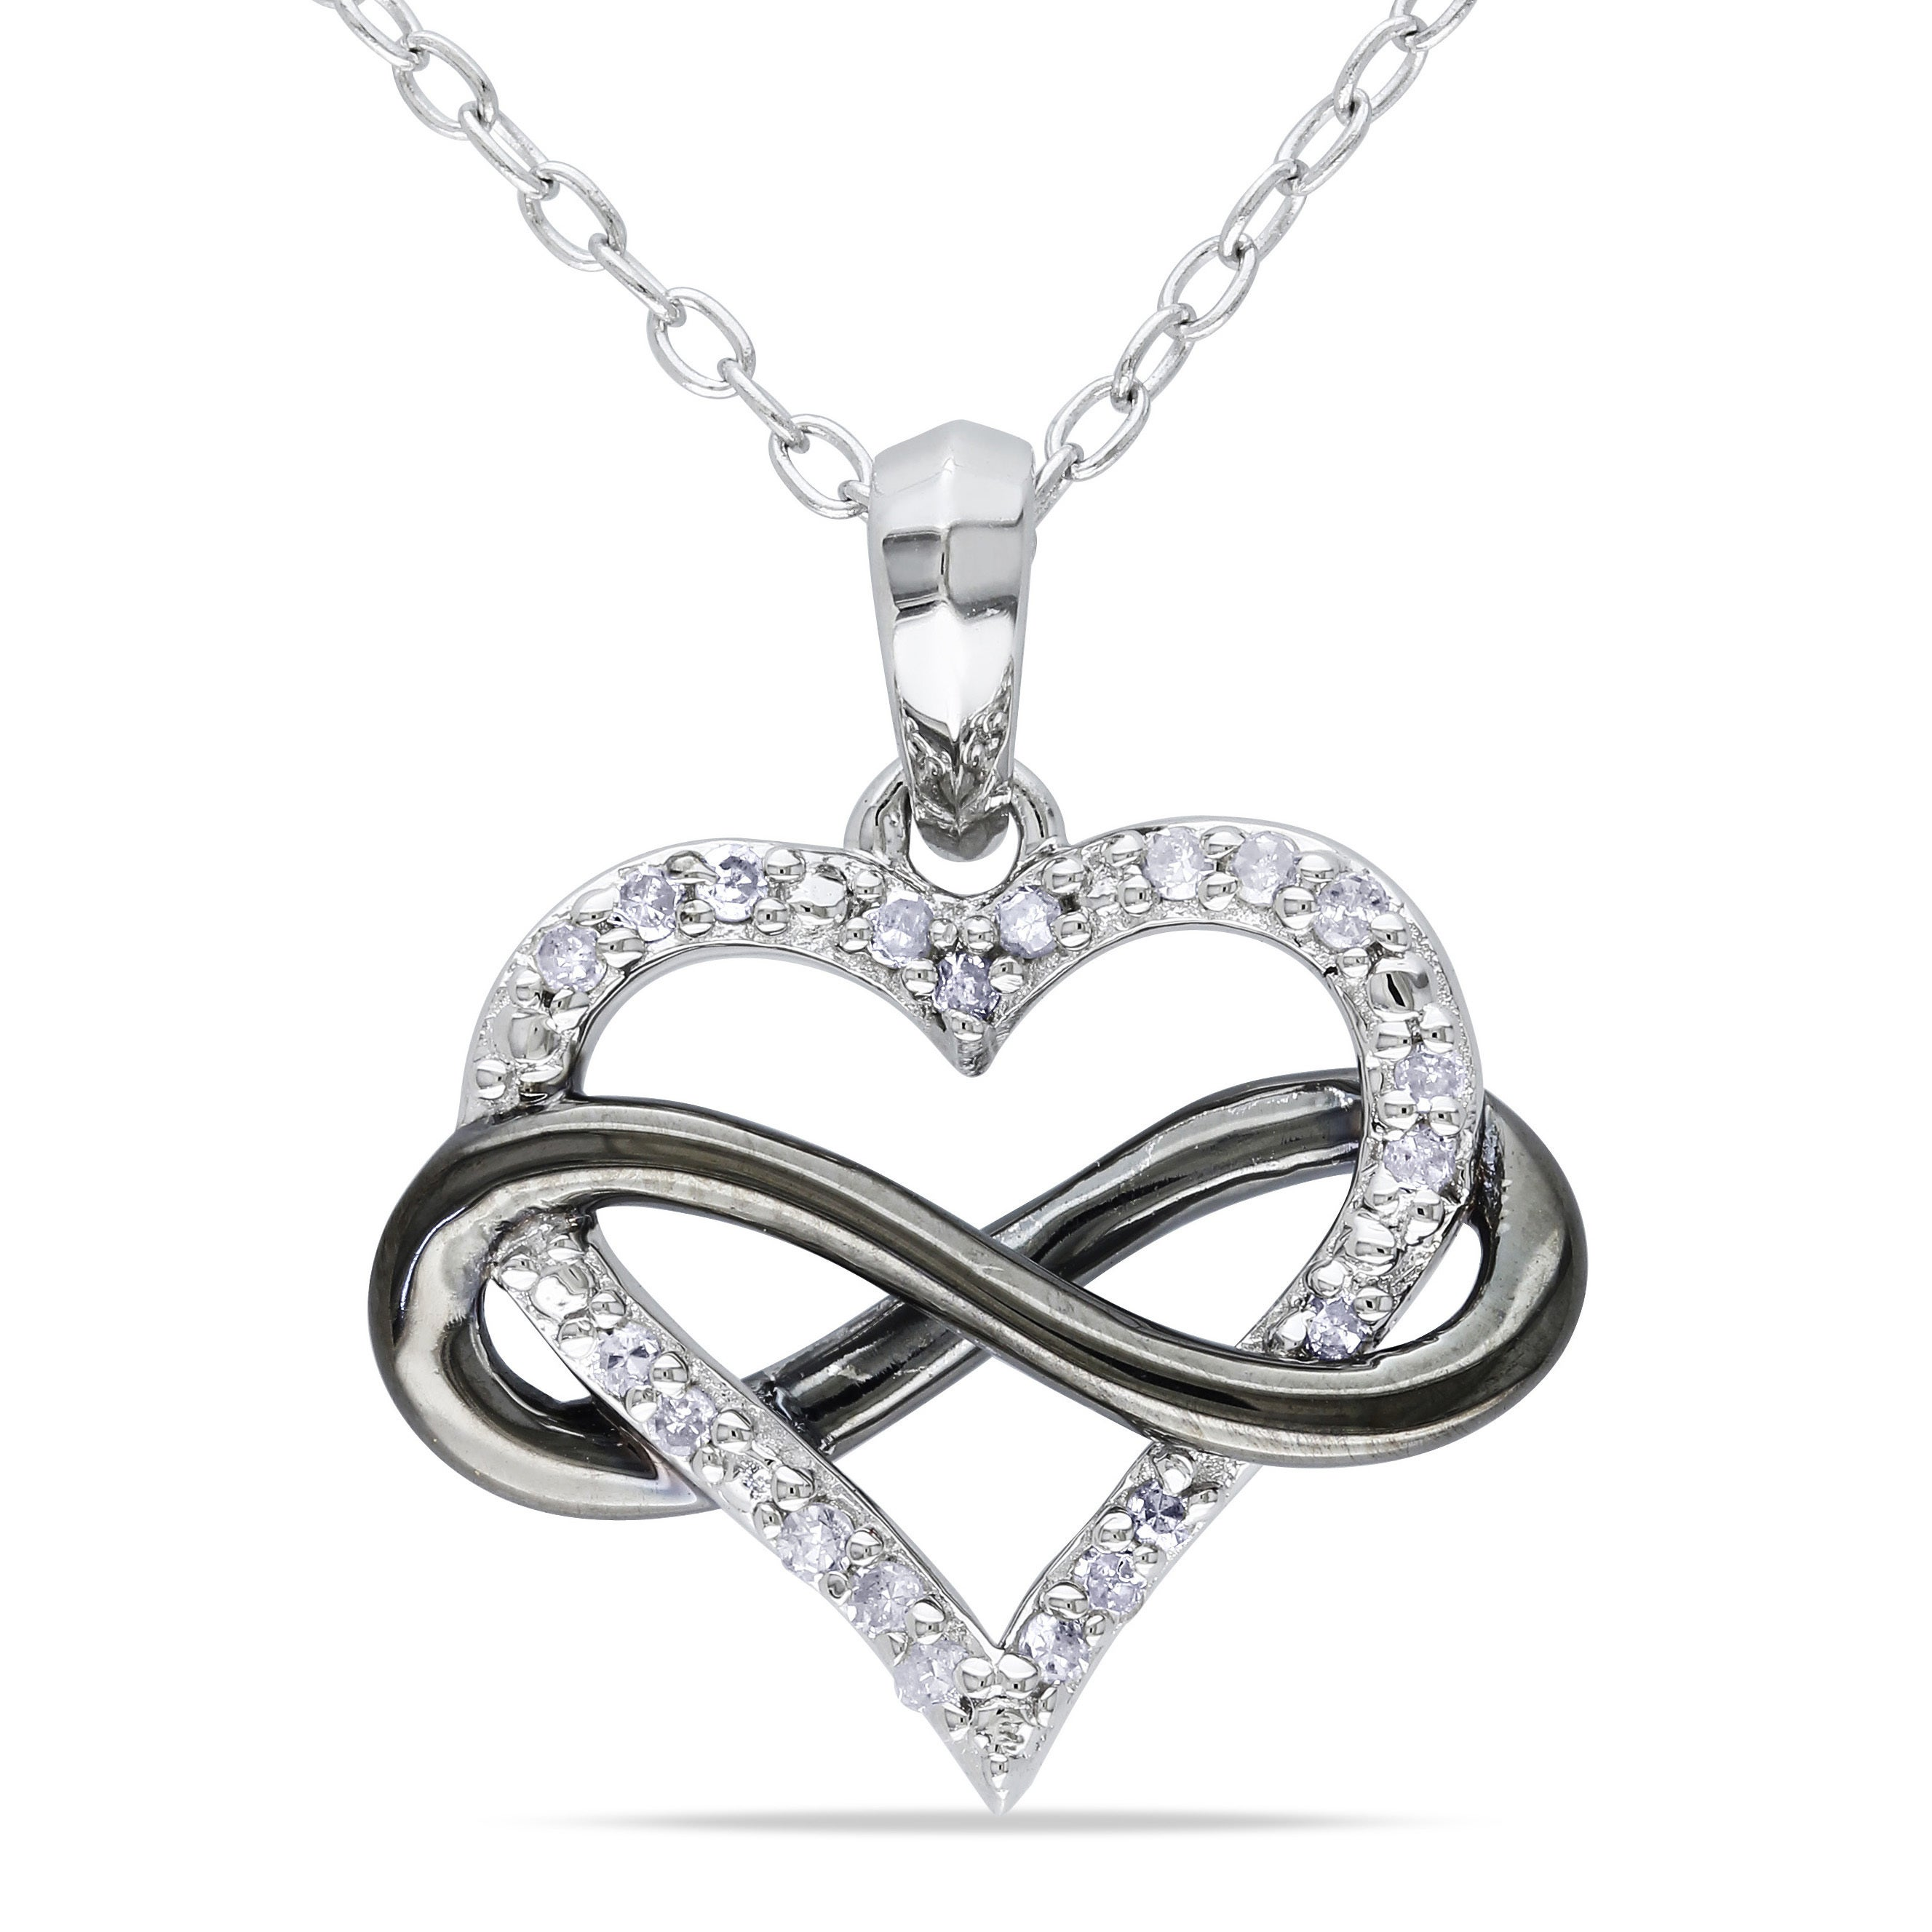 baguette sterling mv to jaredstore silver round diamond hover necklace zm heart jar zoom jared tw ct en